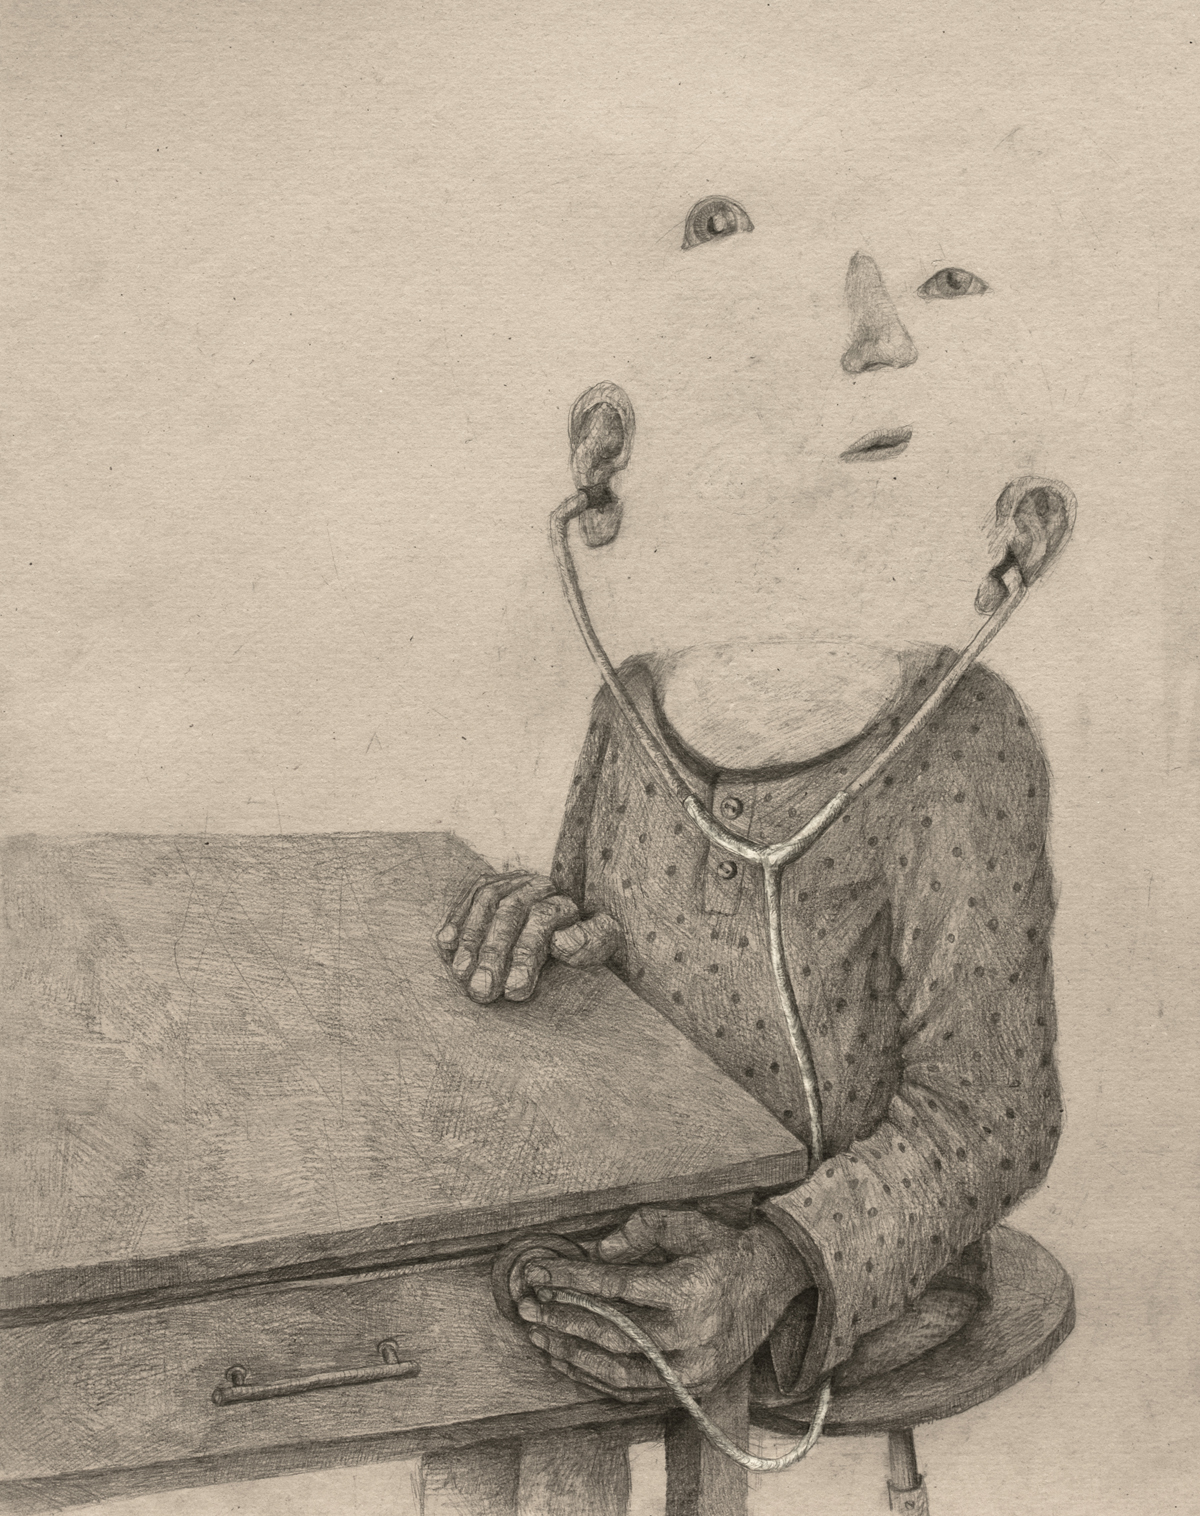 Solitary Worlds Explored in New Psychological Drawings by